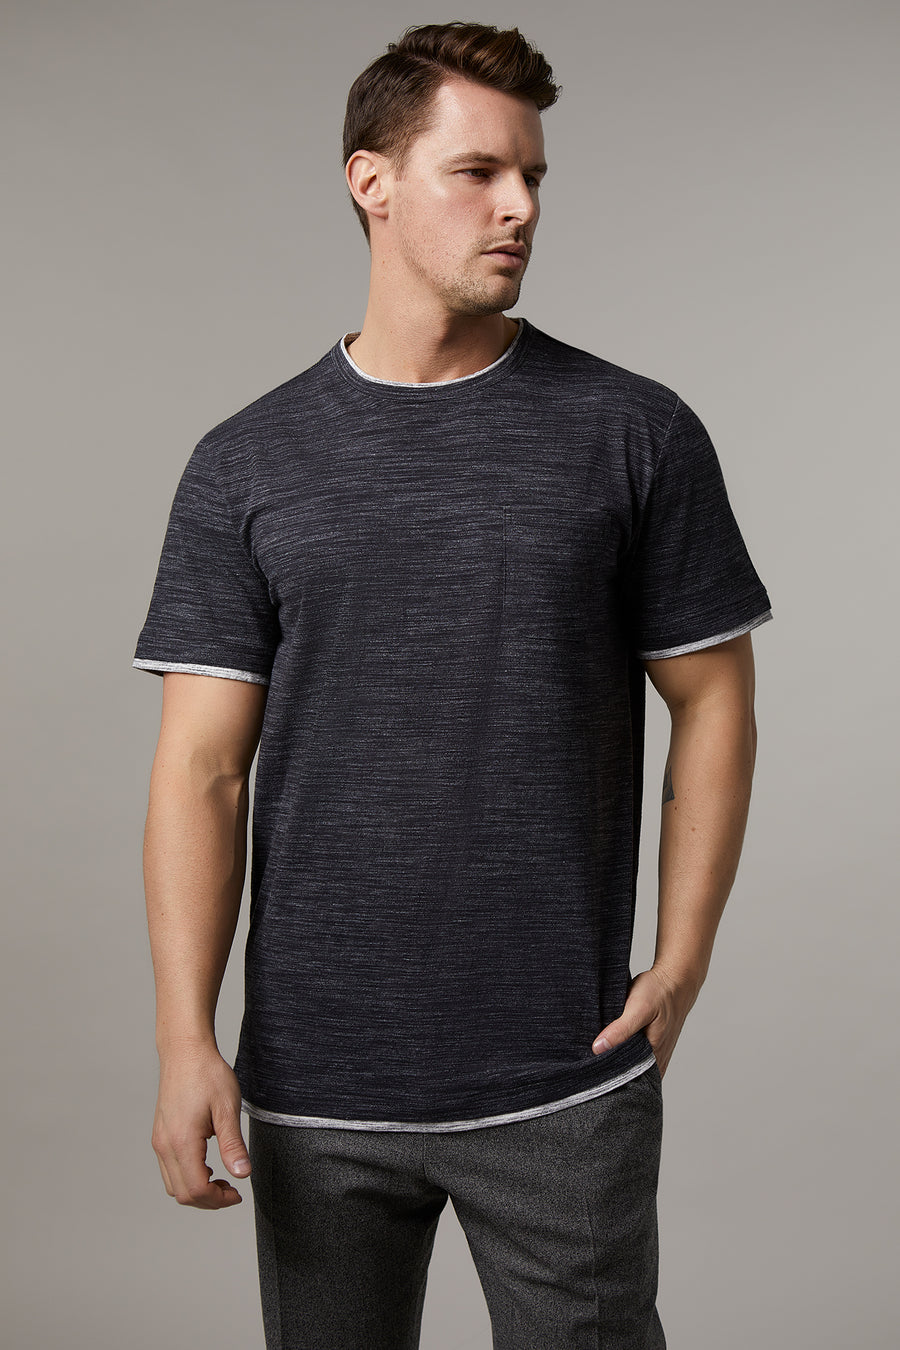 James Short Sleeve Fooler with Pocket